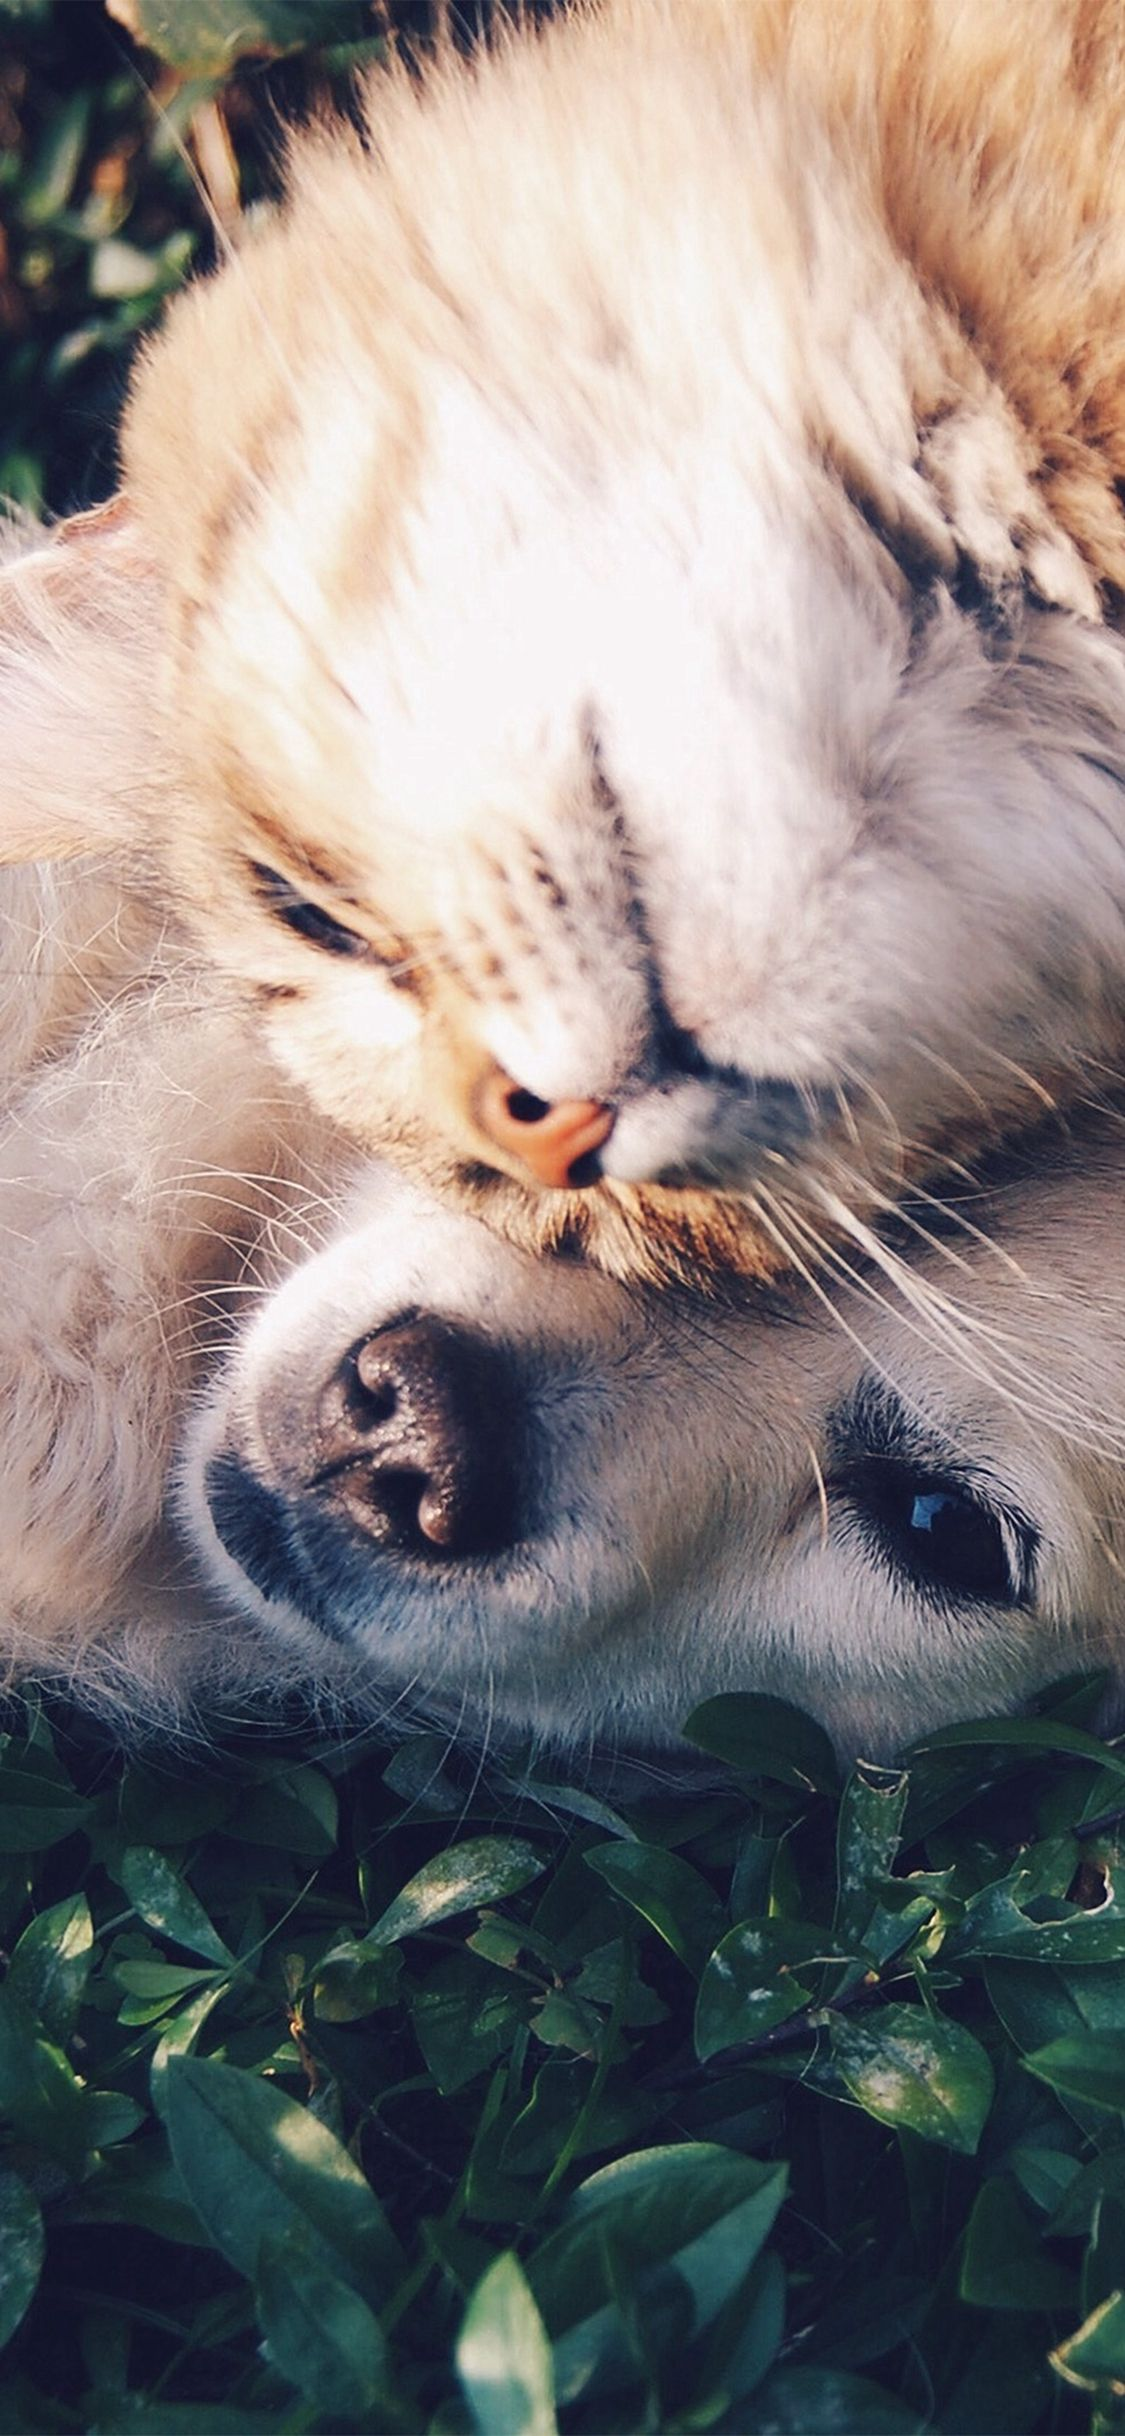 Cat And Dog Animal Love Nature Pure Iphone X Wallpaper Iphone X